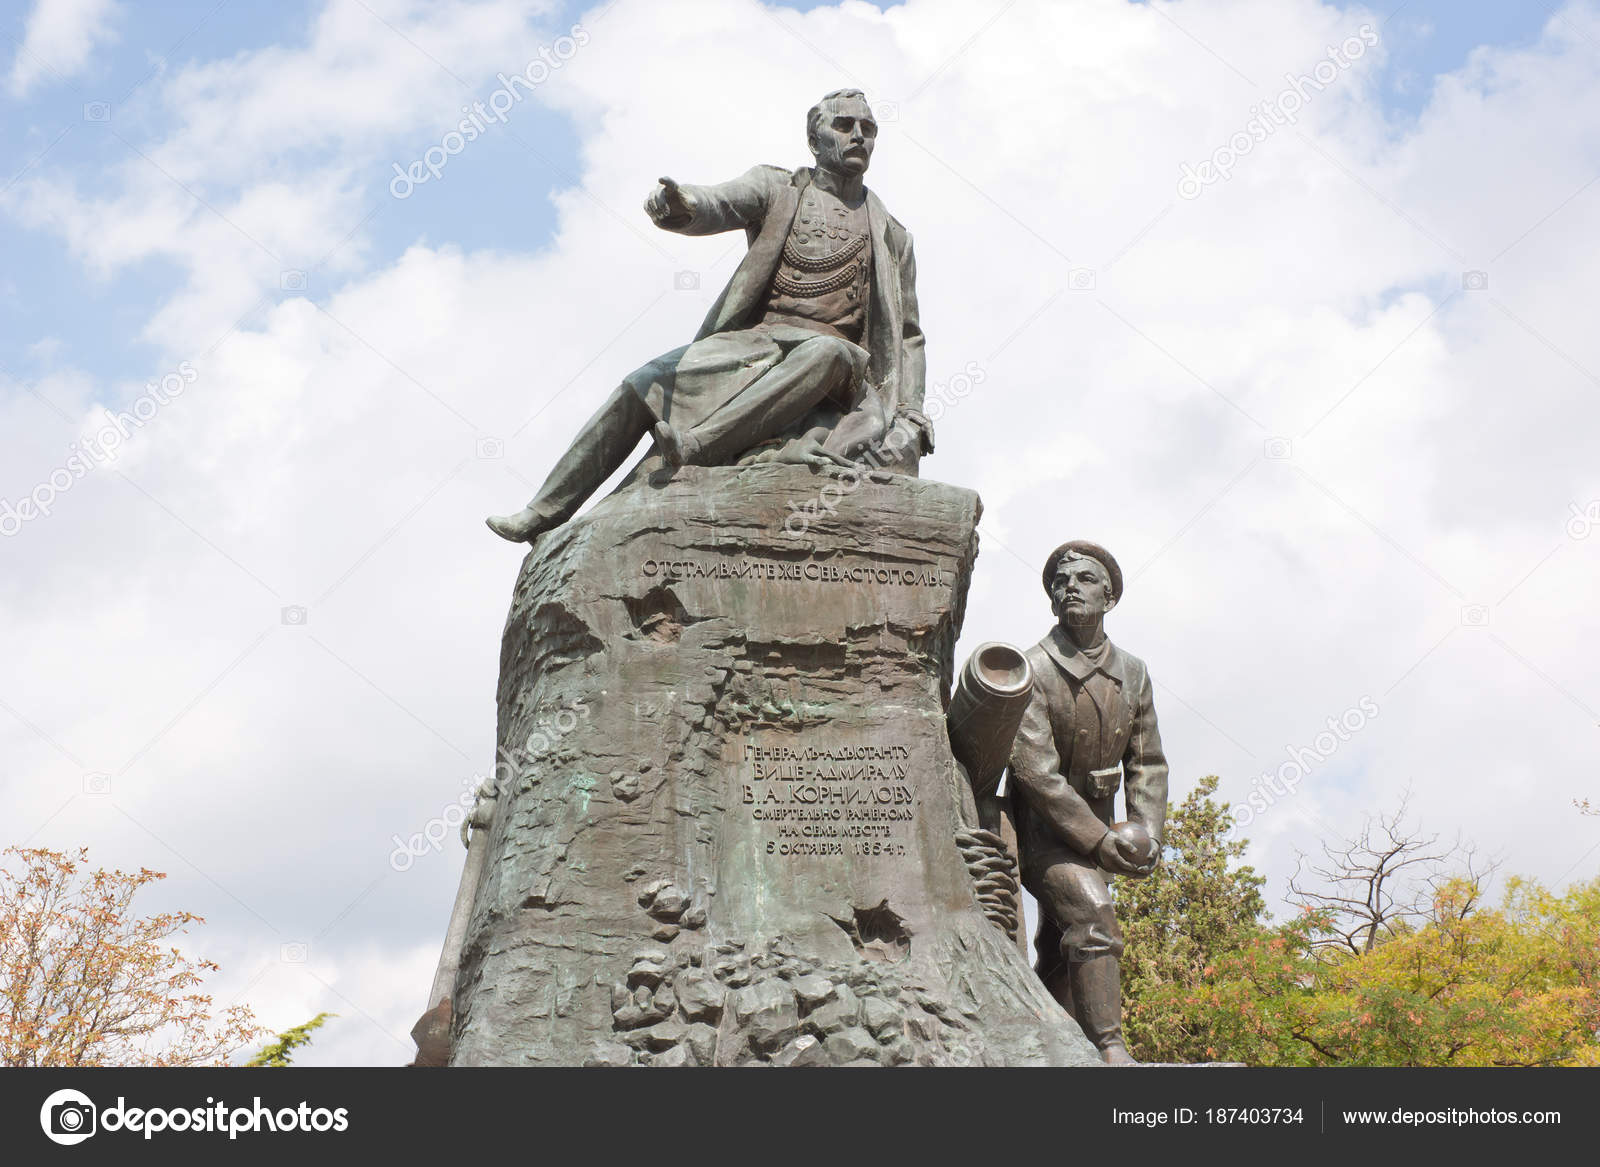 Heroes of the Crimean War of 1853-1856: list. History of the Crimean War 4